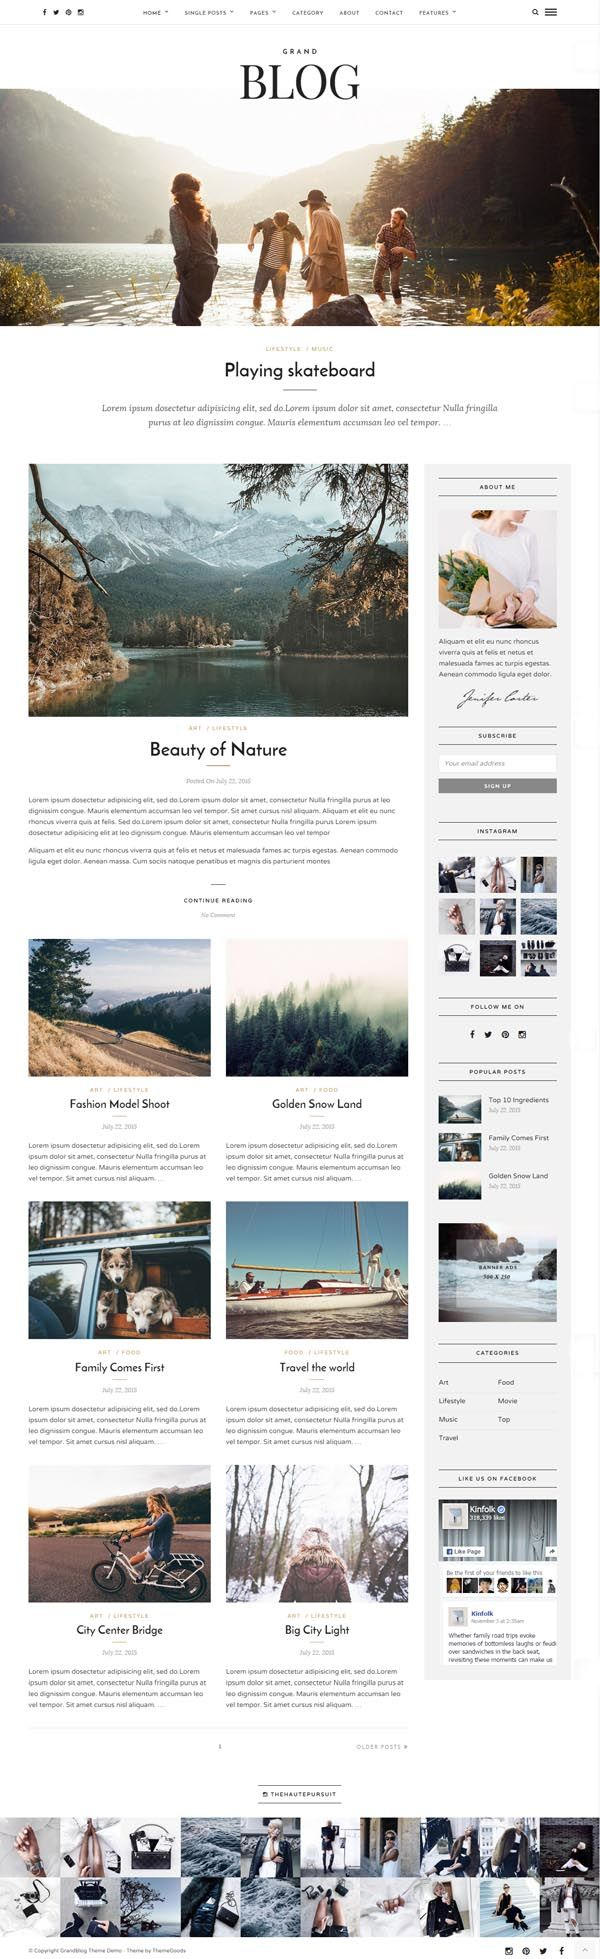 Grand Blog - Responsive Blog Theme #responsivedesign #html5 #wordpressthemes…